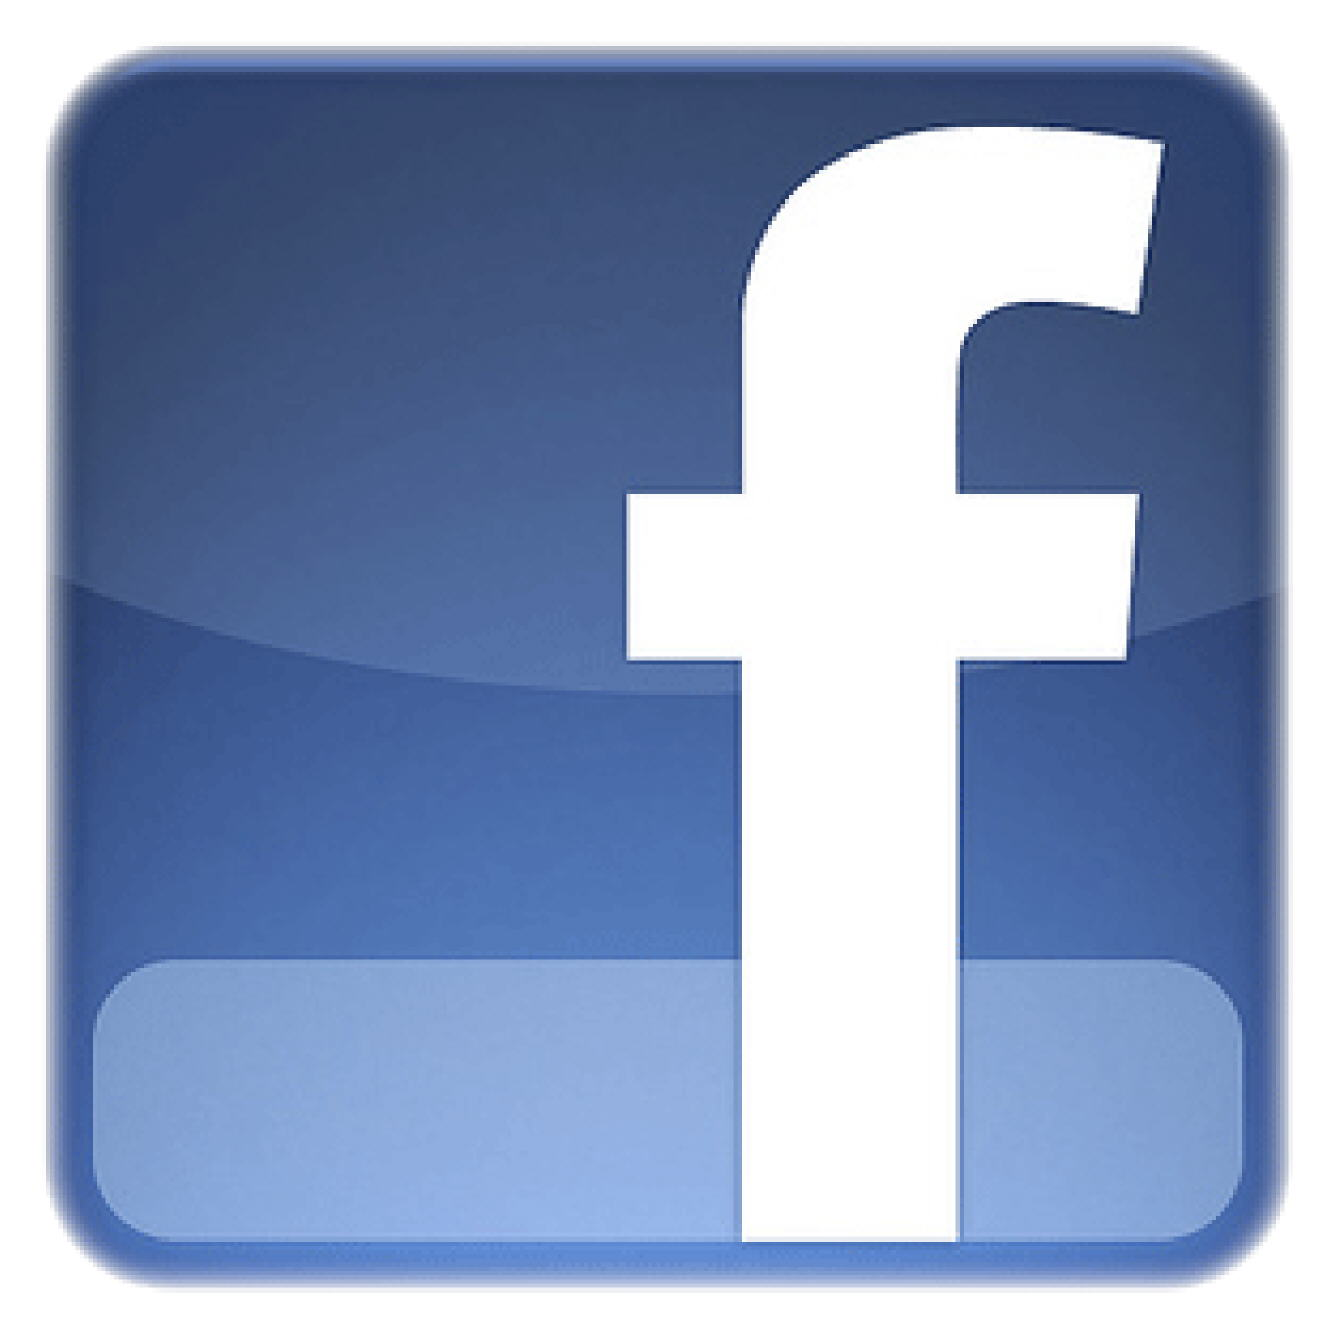 Could Facebook Become OS Leader On Mobile Devices, Including The iPhone?